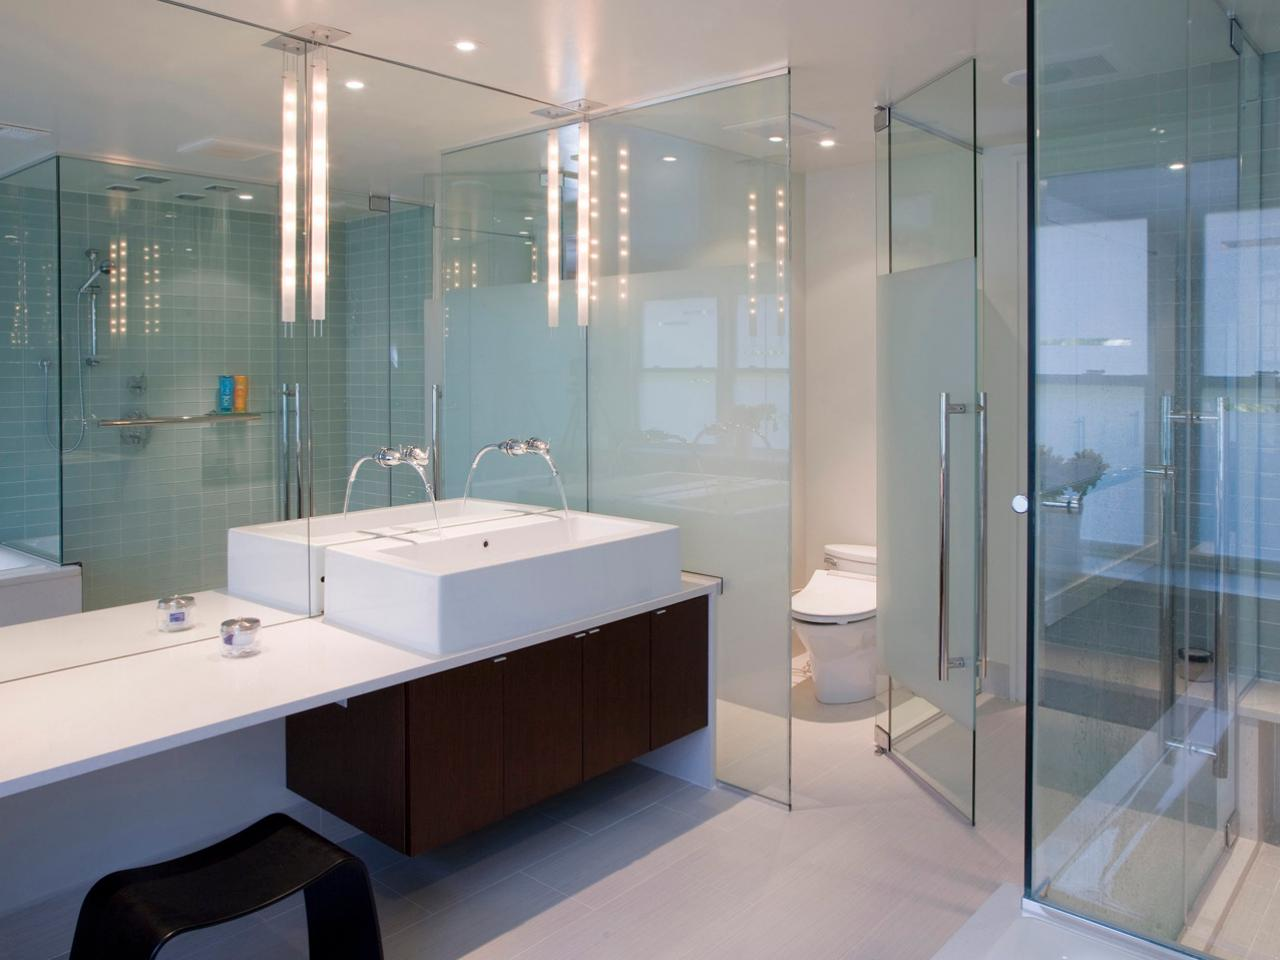 Fiberglass Showers And Glass Doors